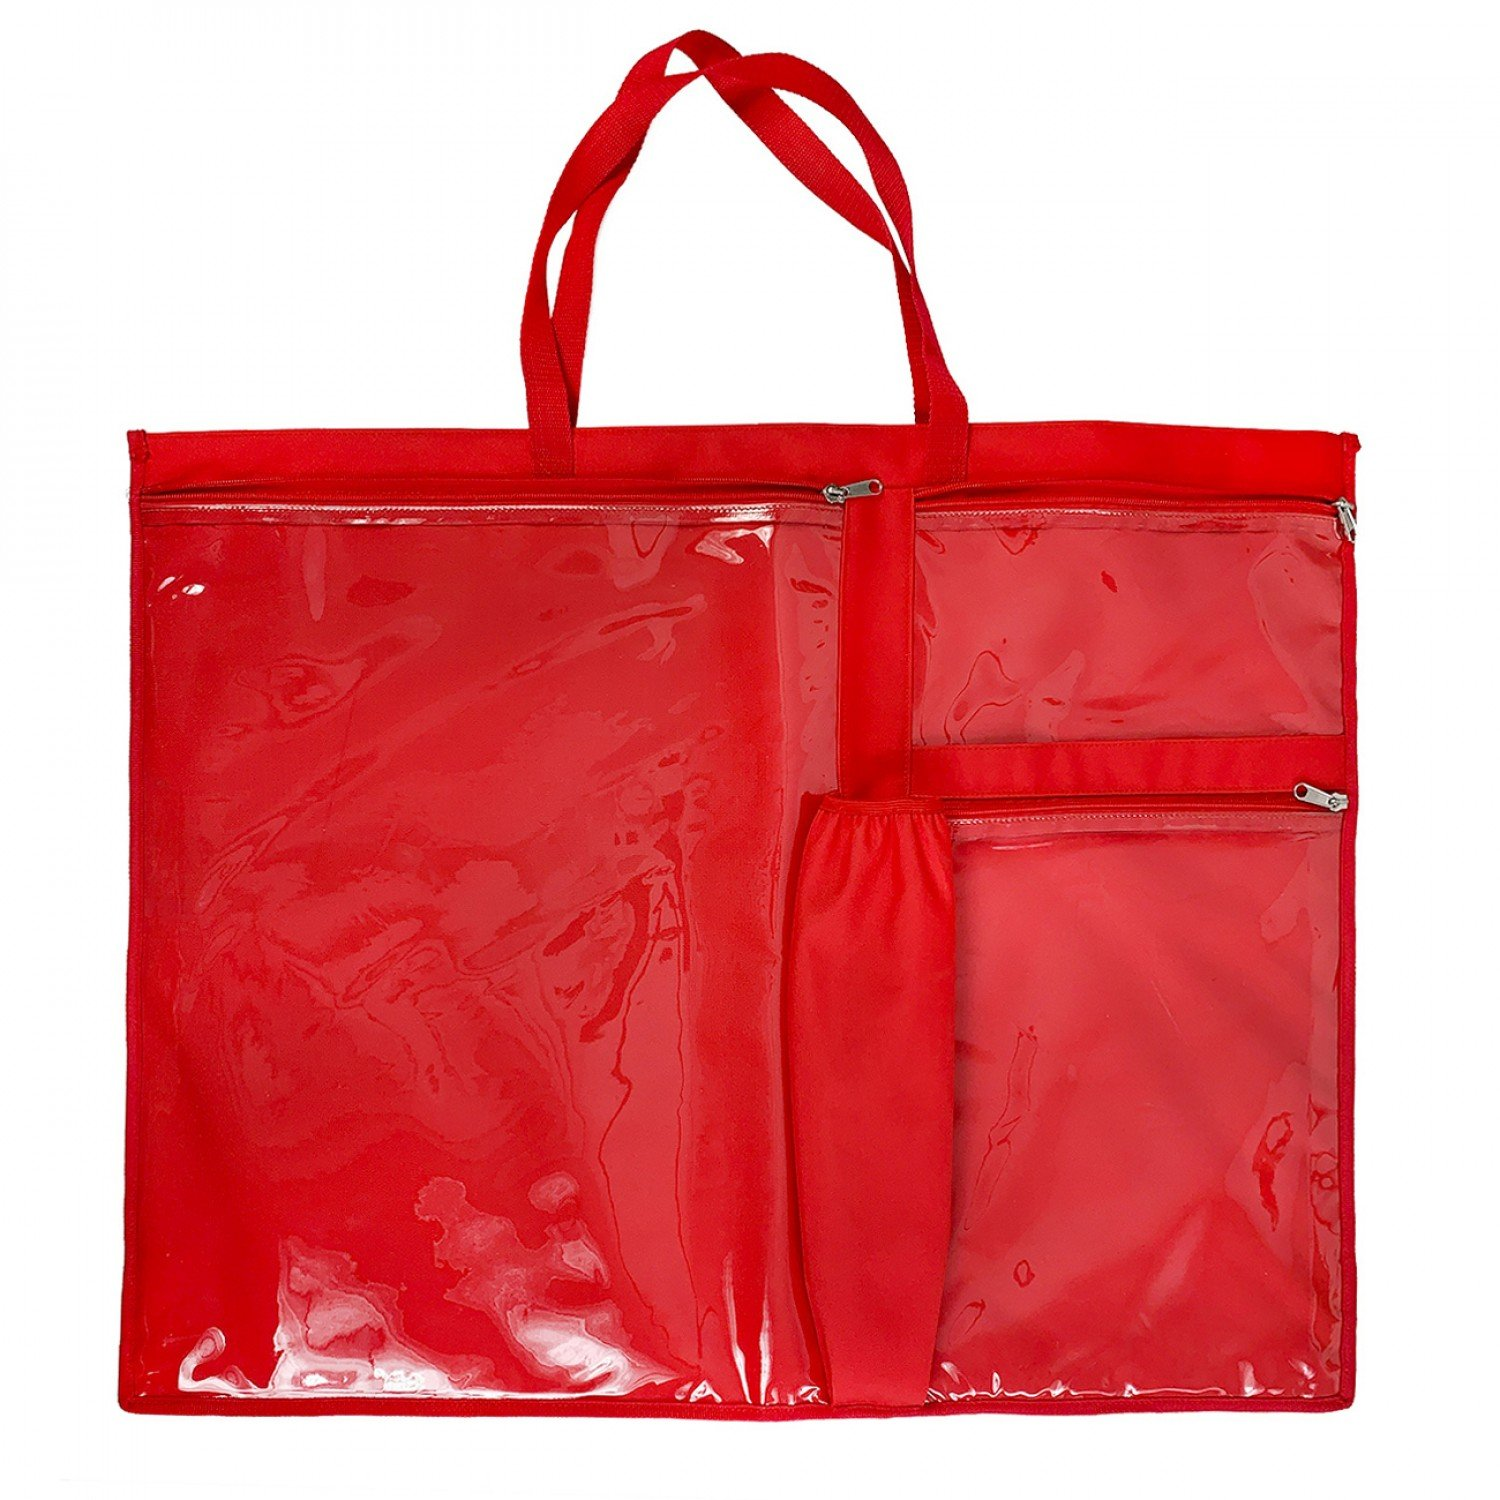 ToteOlogy Notions Tote 28 x 22